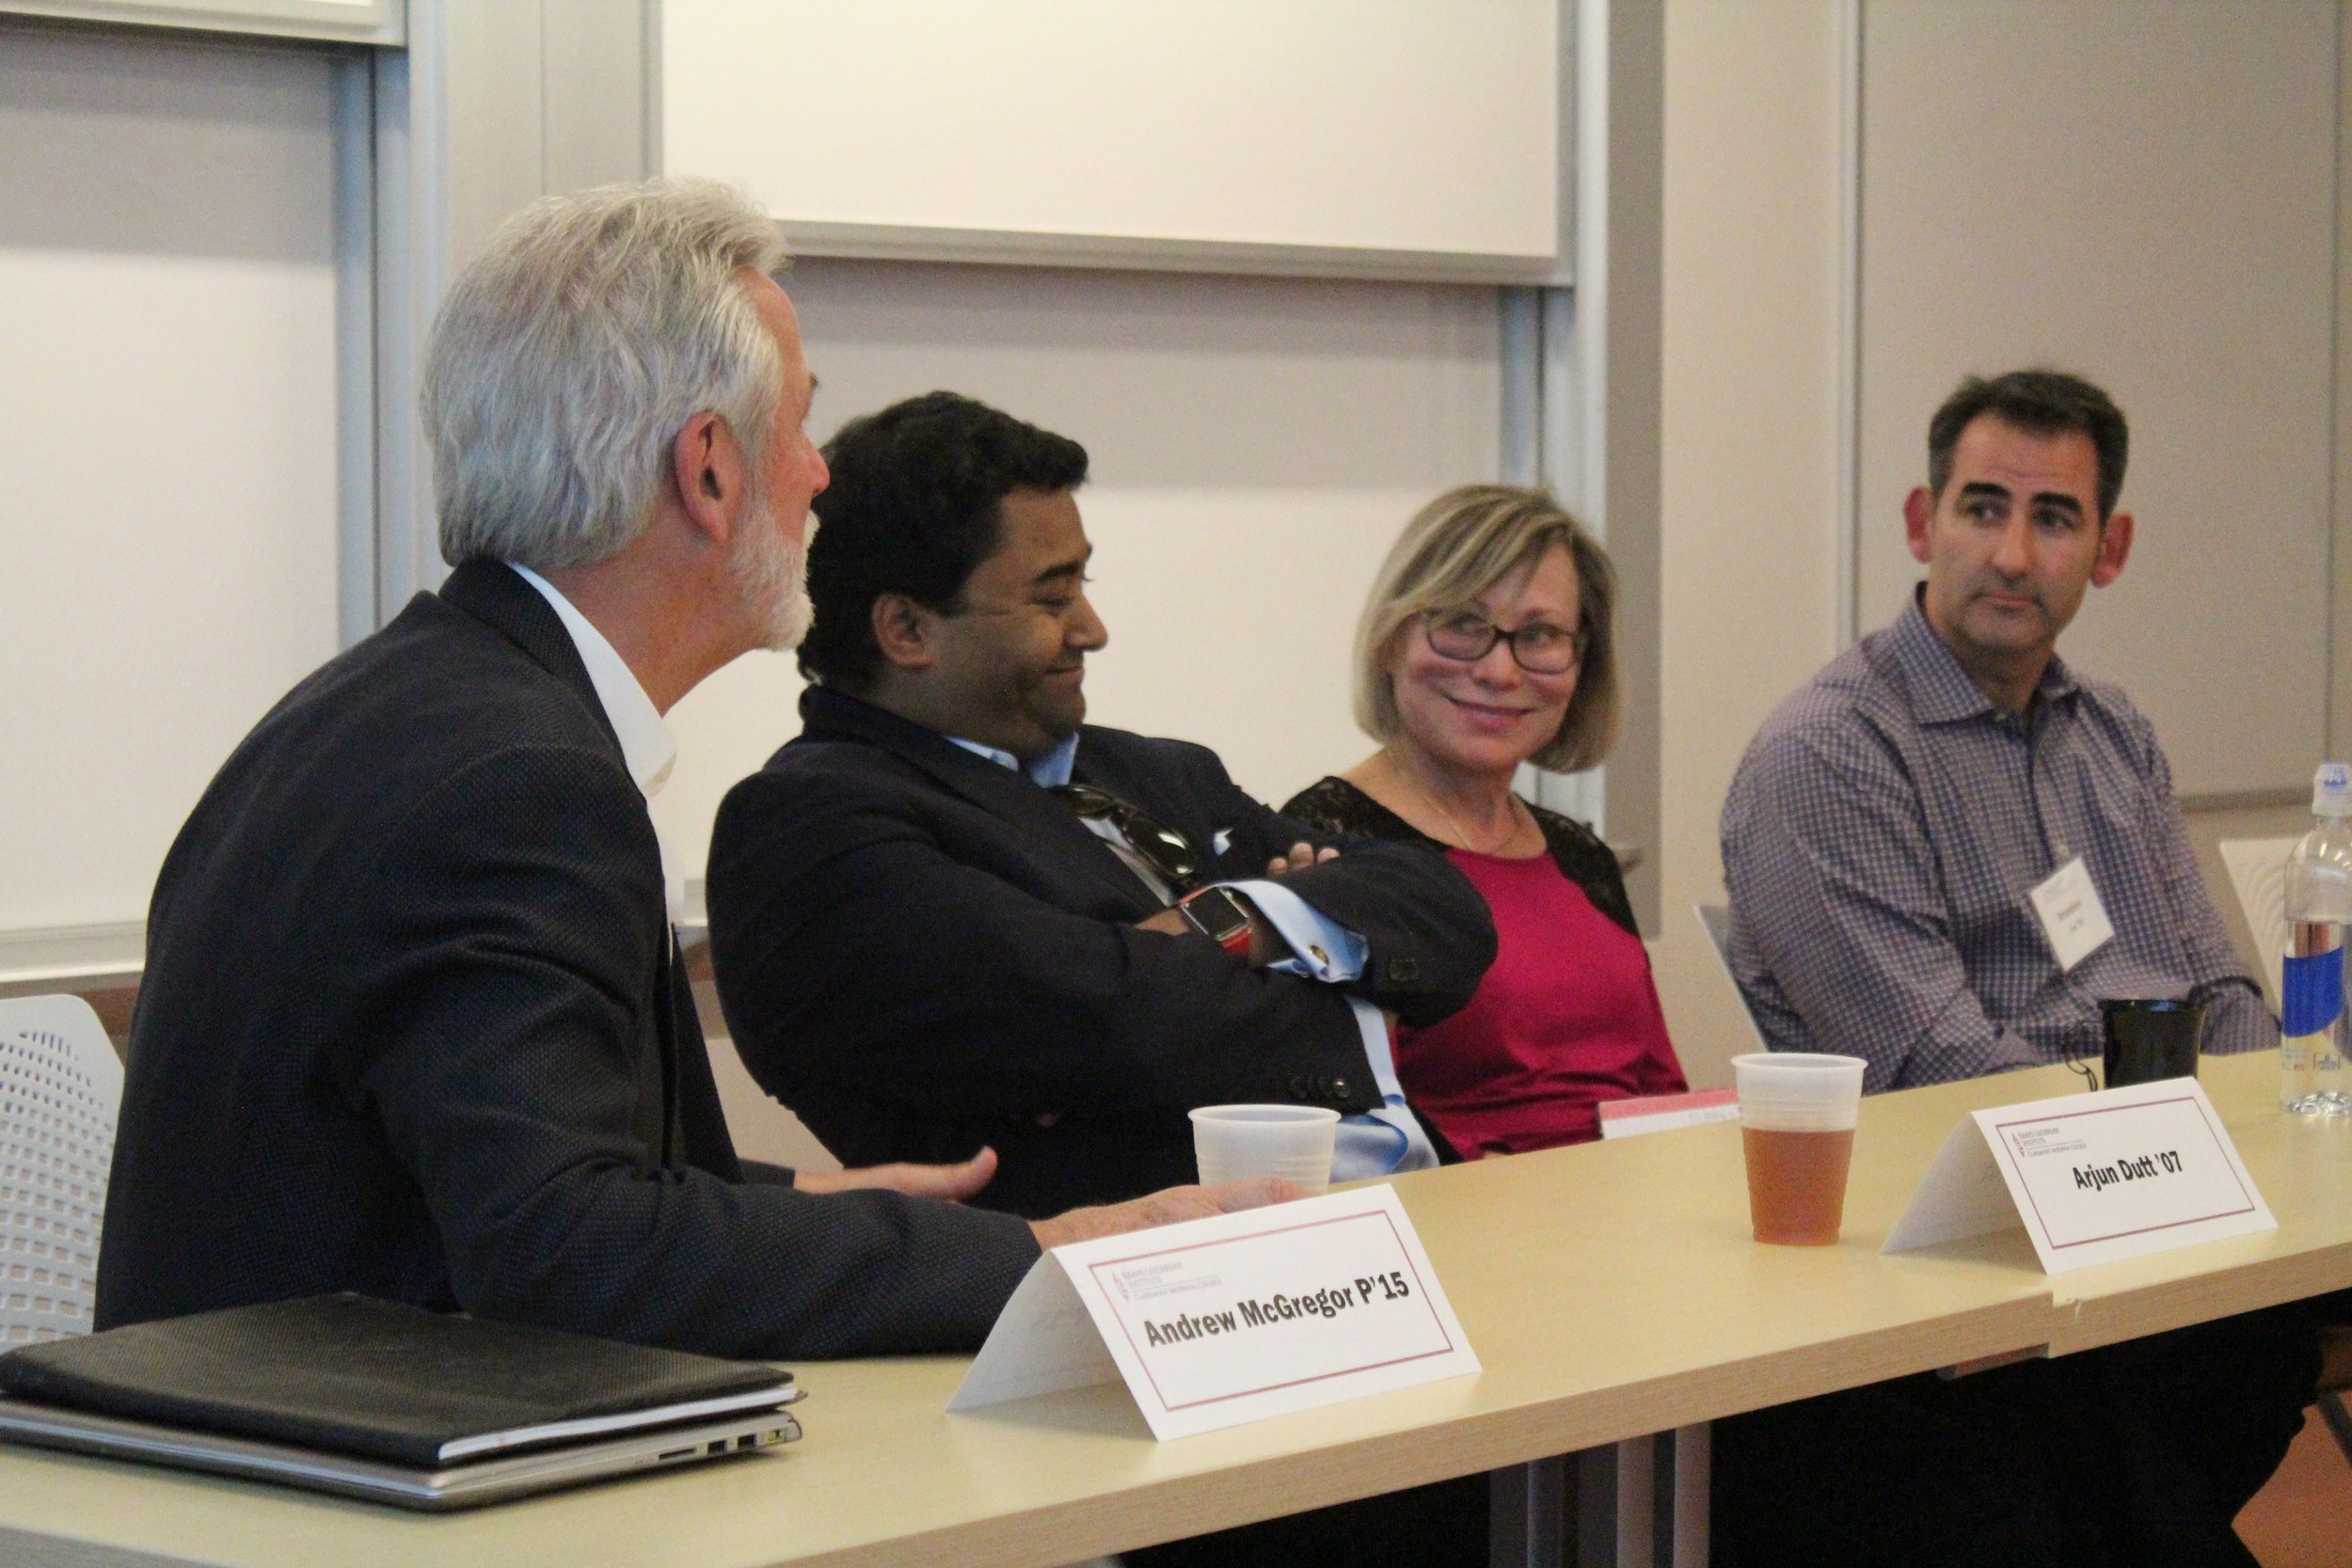 Panelists shares their entrepreneurial stories with students.